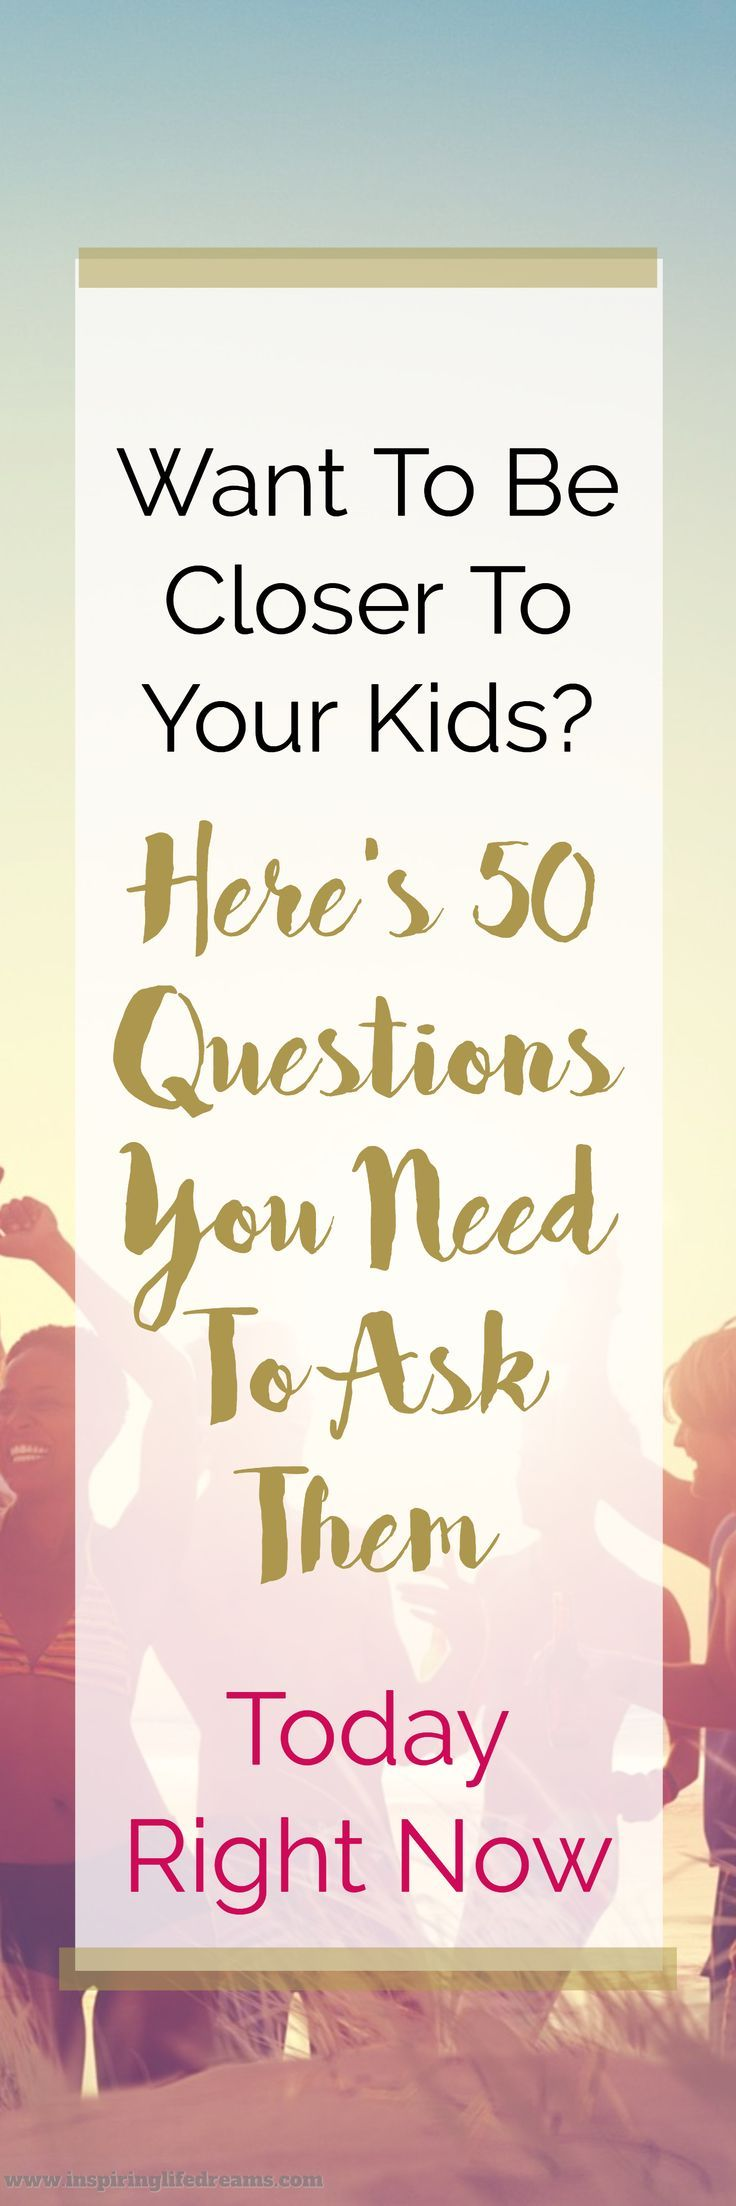 Best 25 Questions To Ask Ideas On Pinterest  Dating -7152